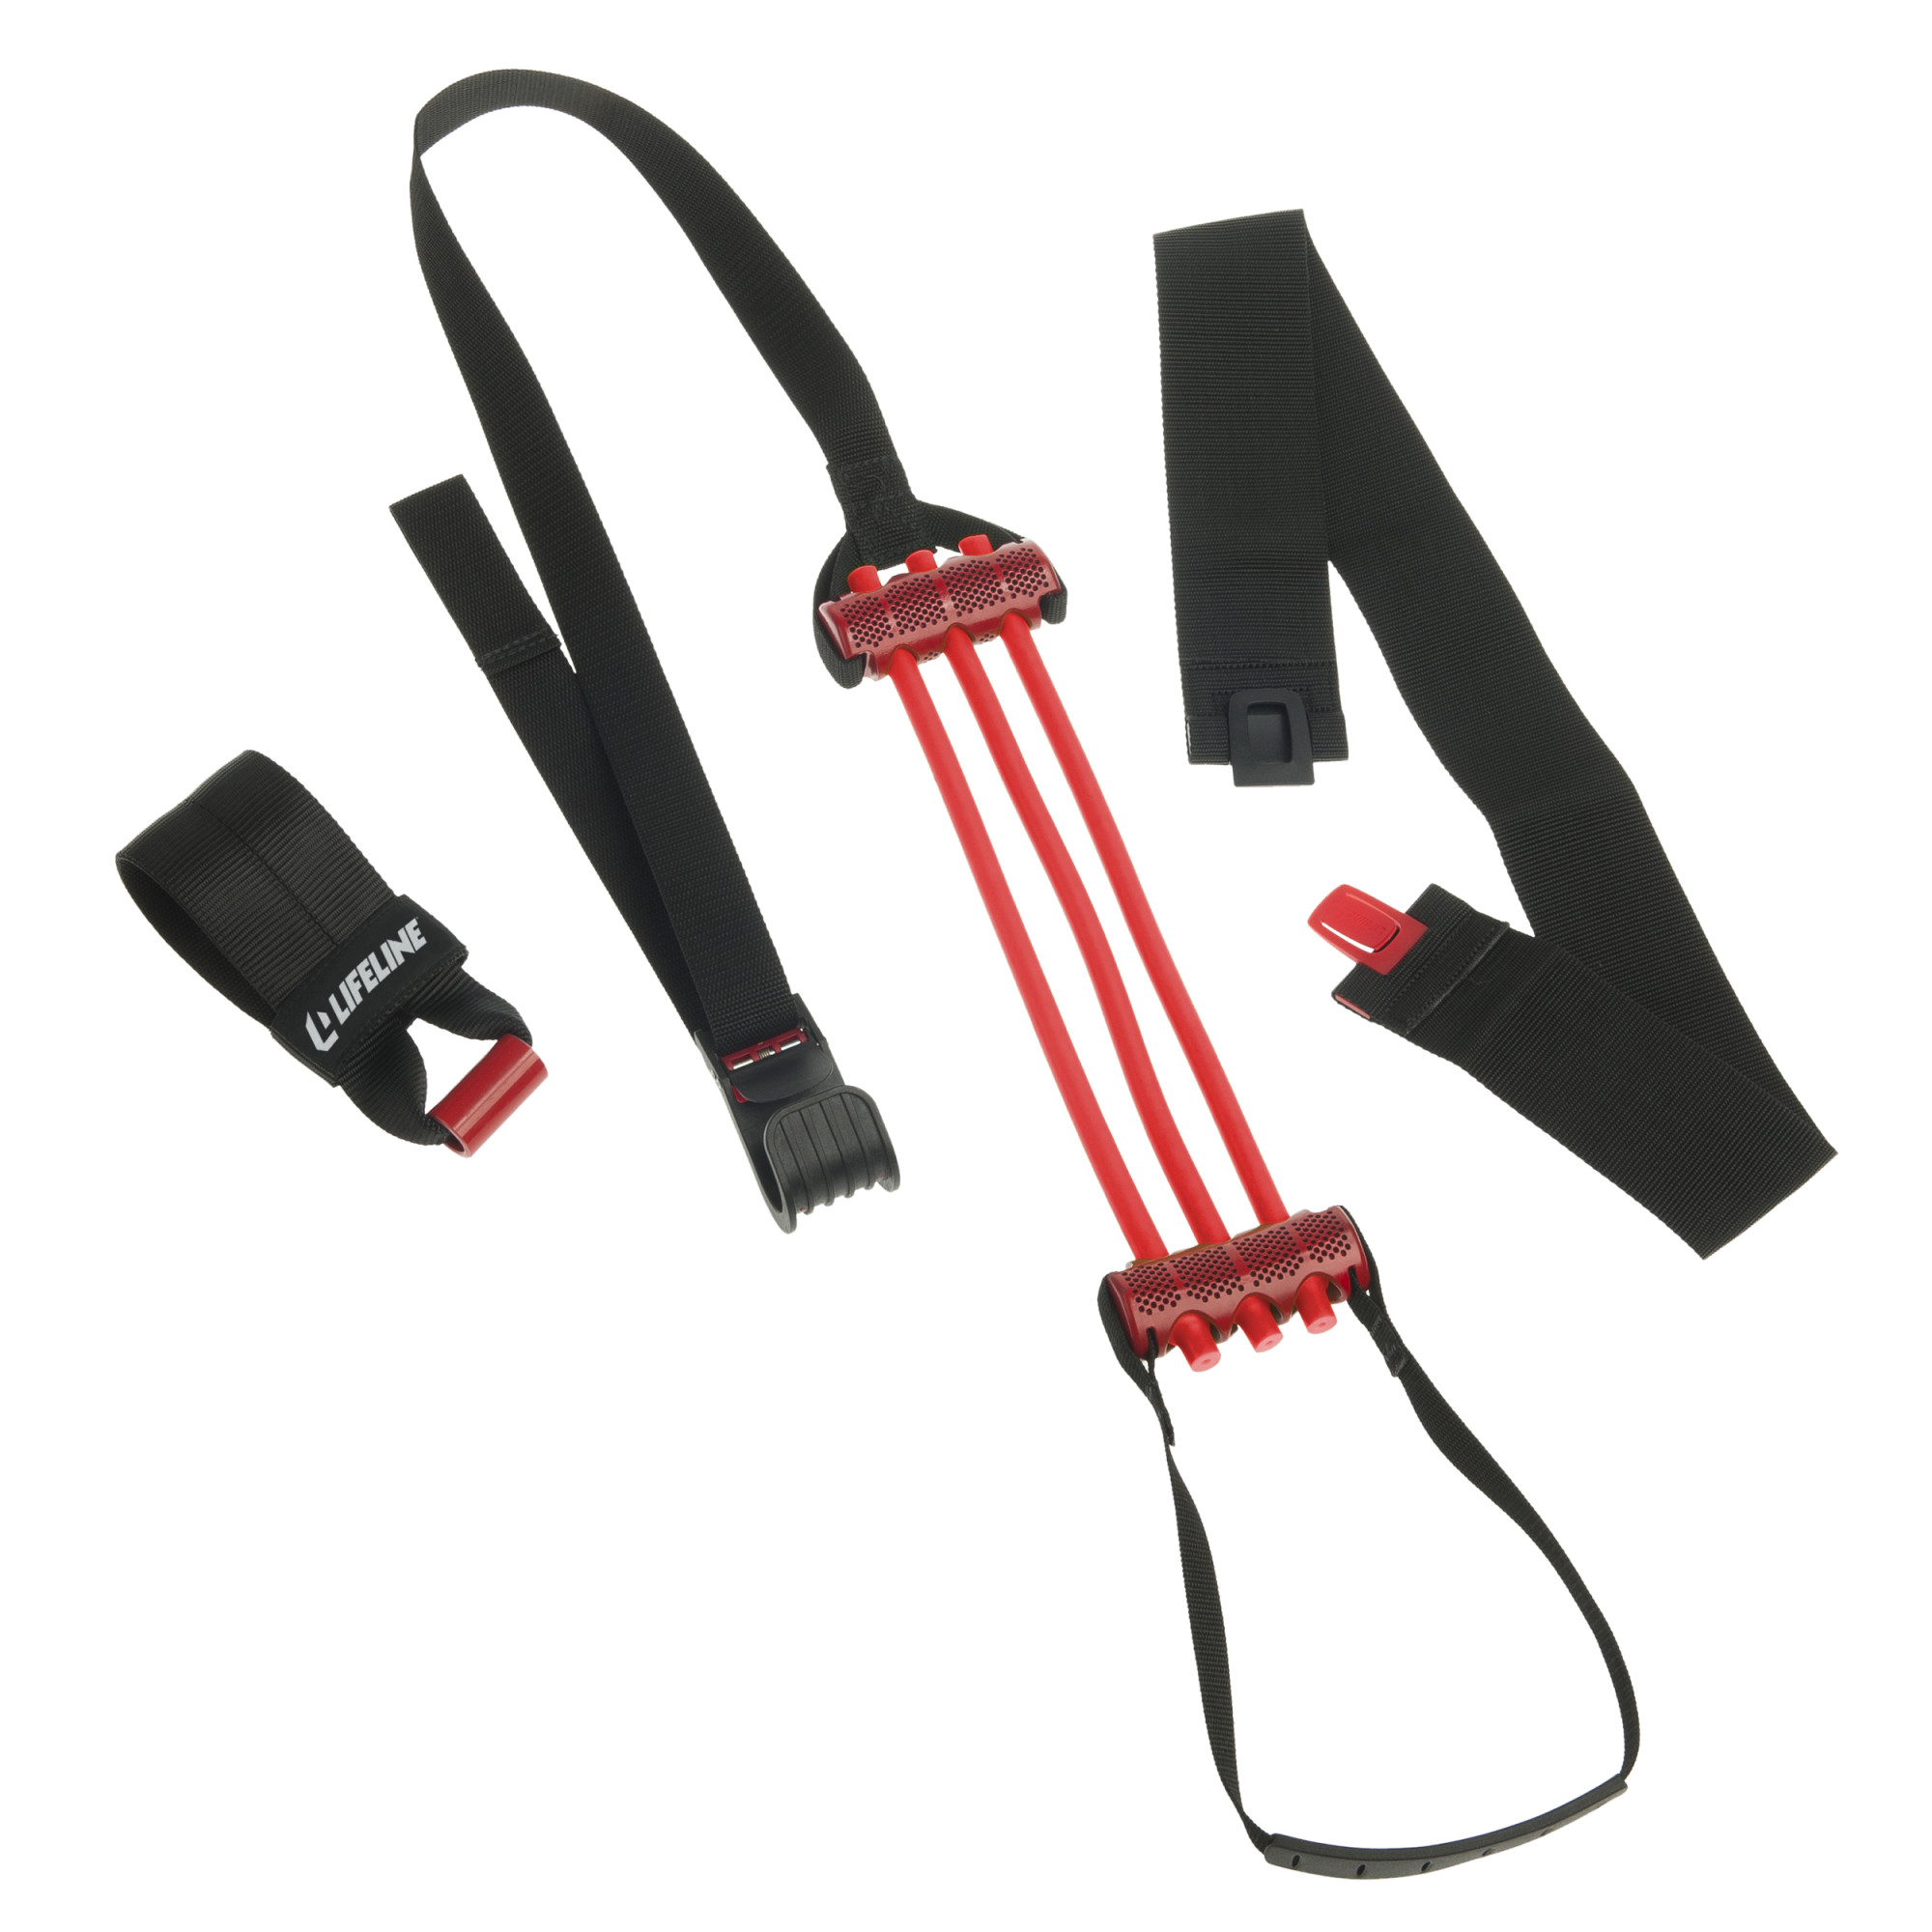 Lifeline Pull Up Revolution Adjustable Pull Up Assistance System to Perform More, High-Quality Reps with Proper Form